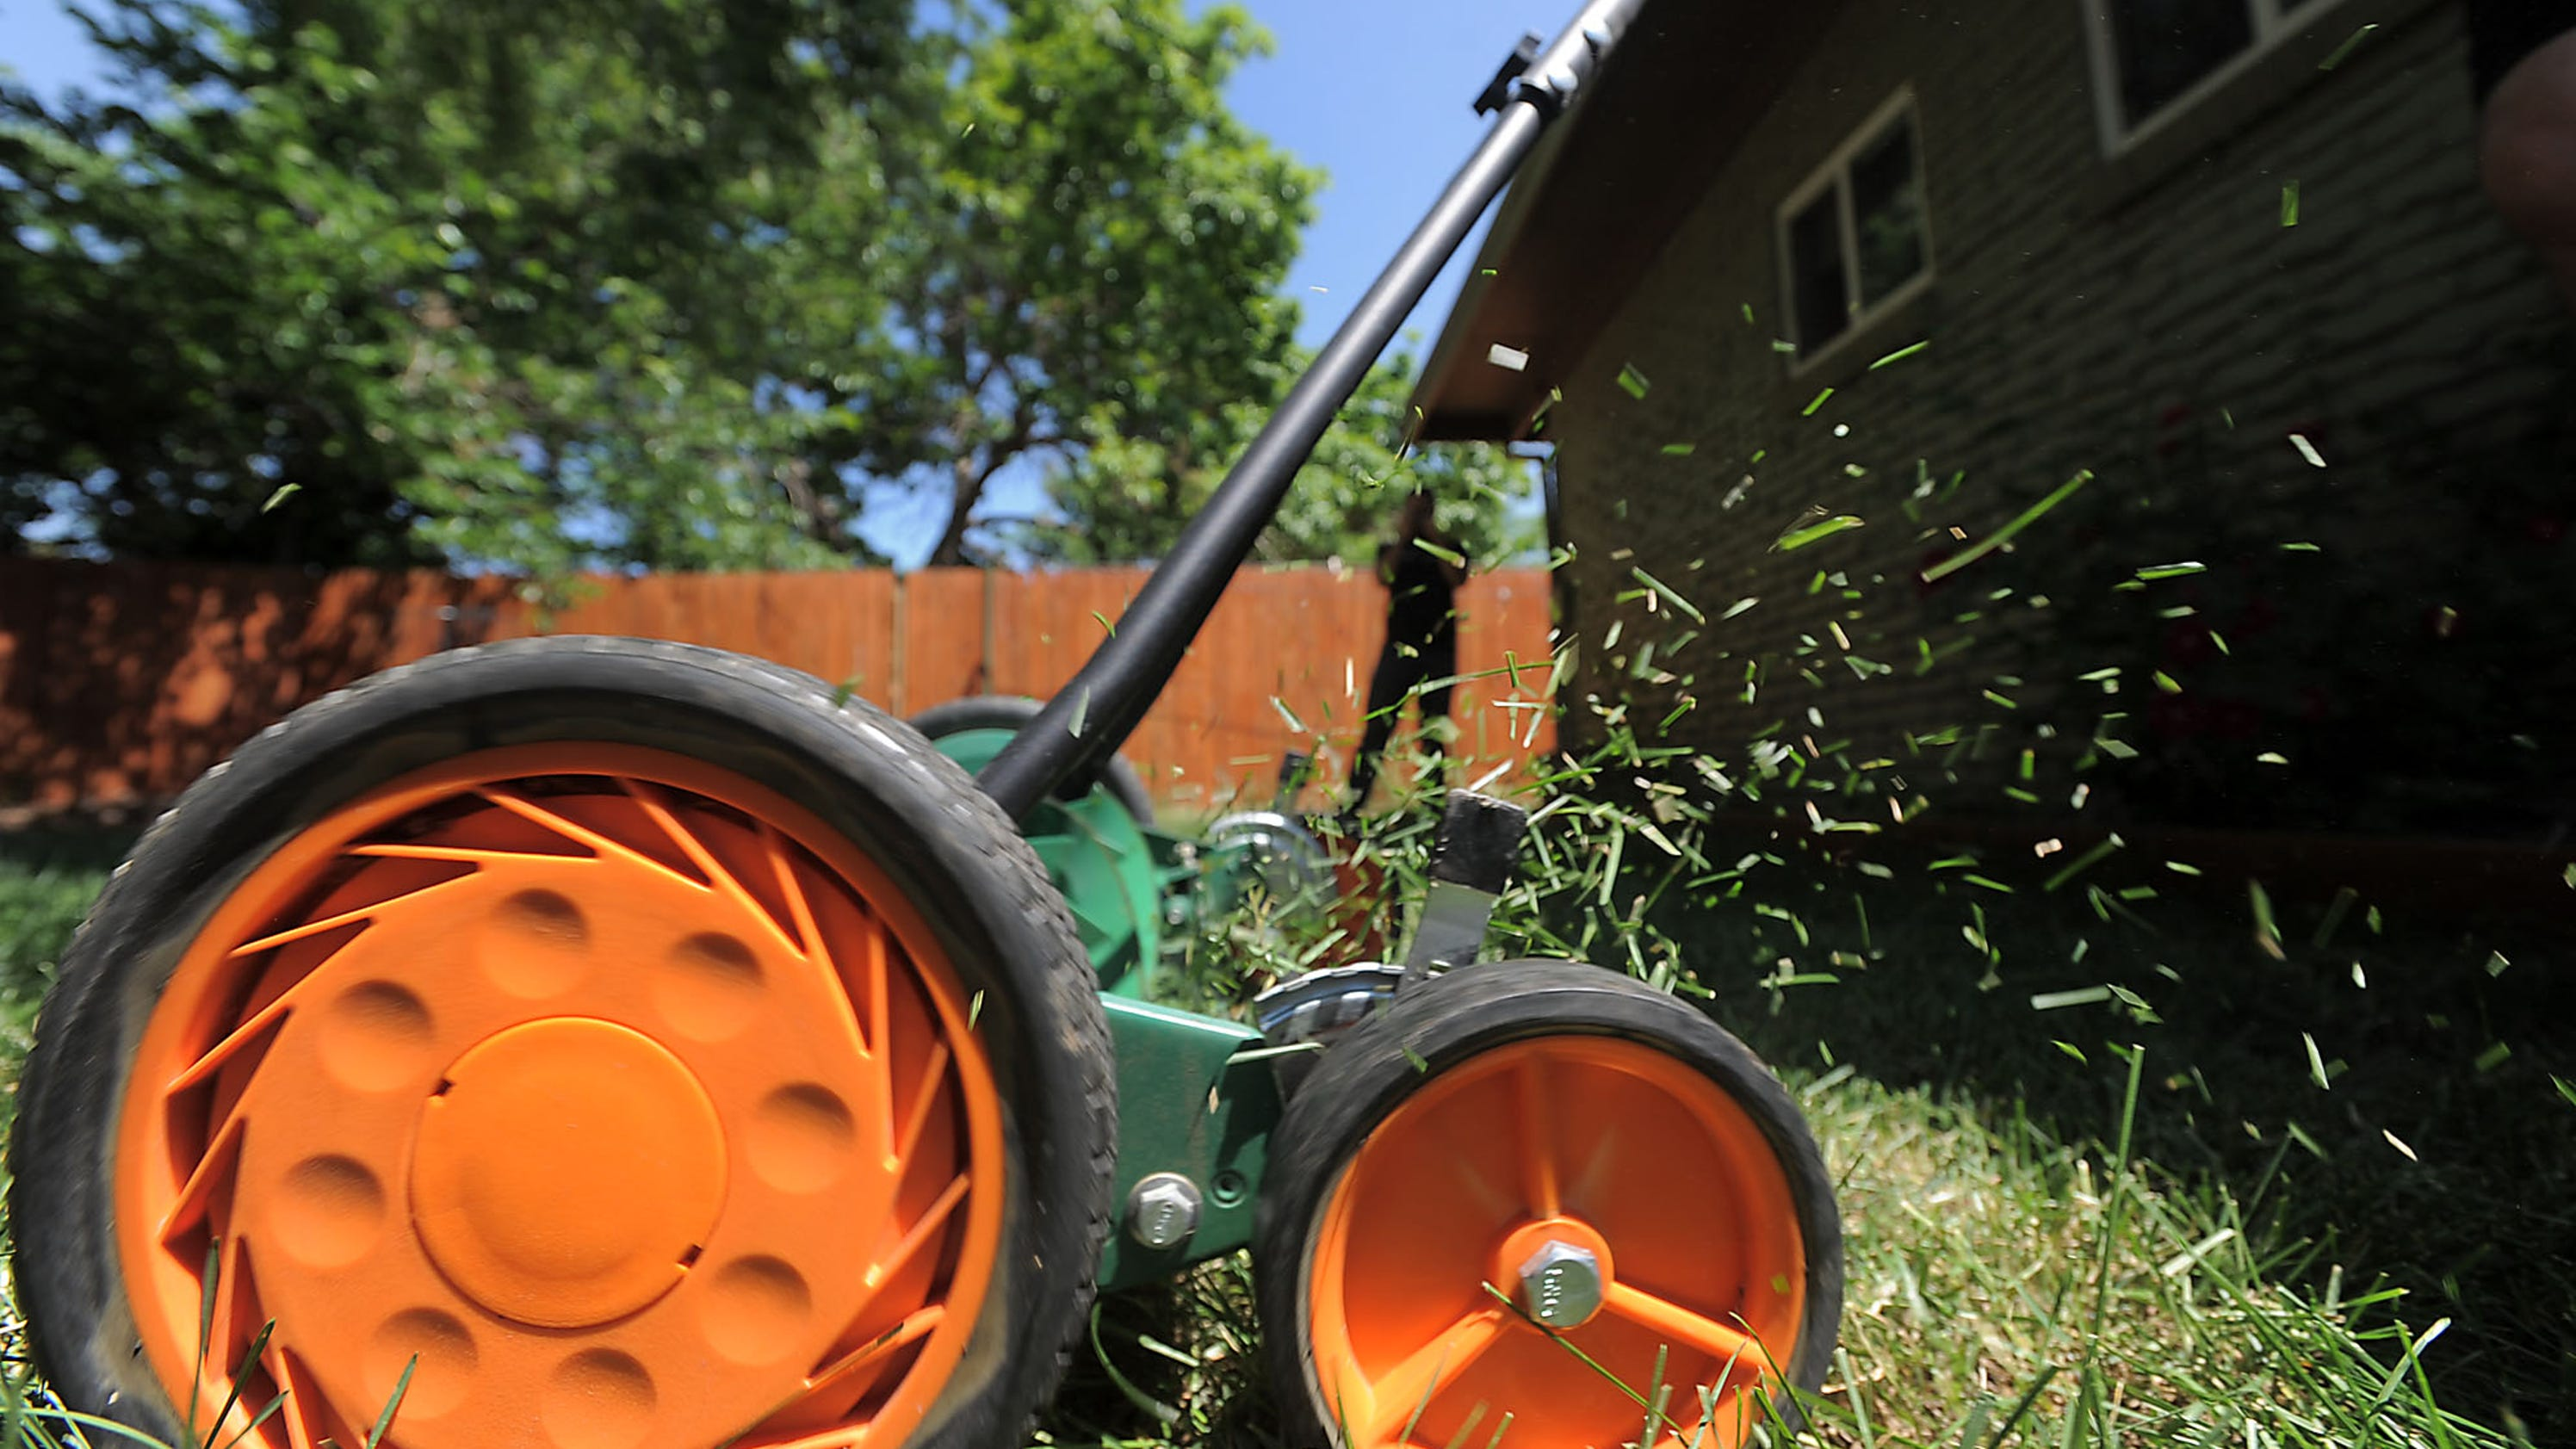 Fort Collins helps residents ditch gas lawnmowers